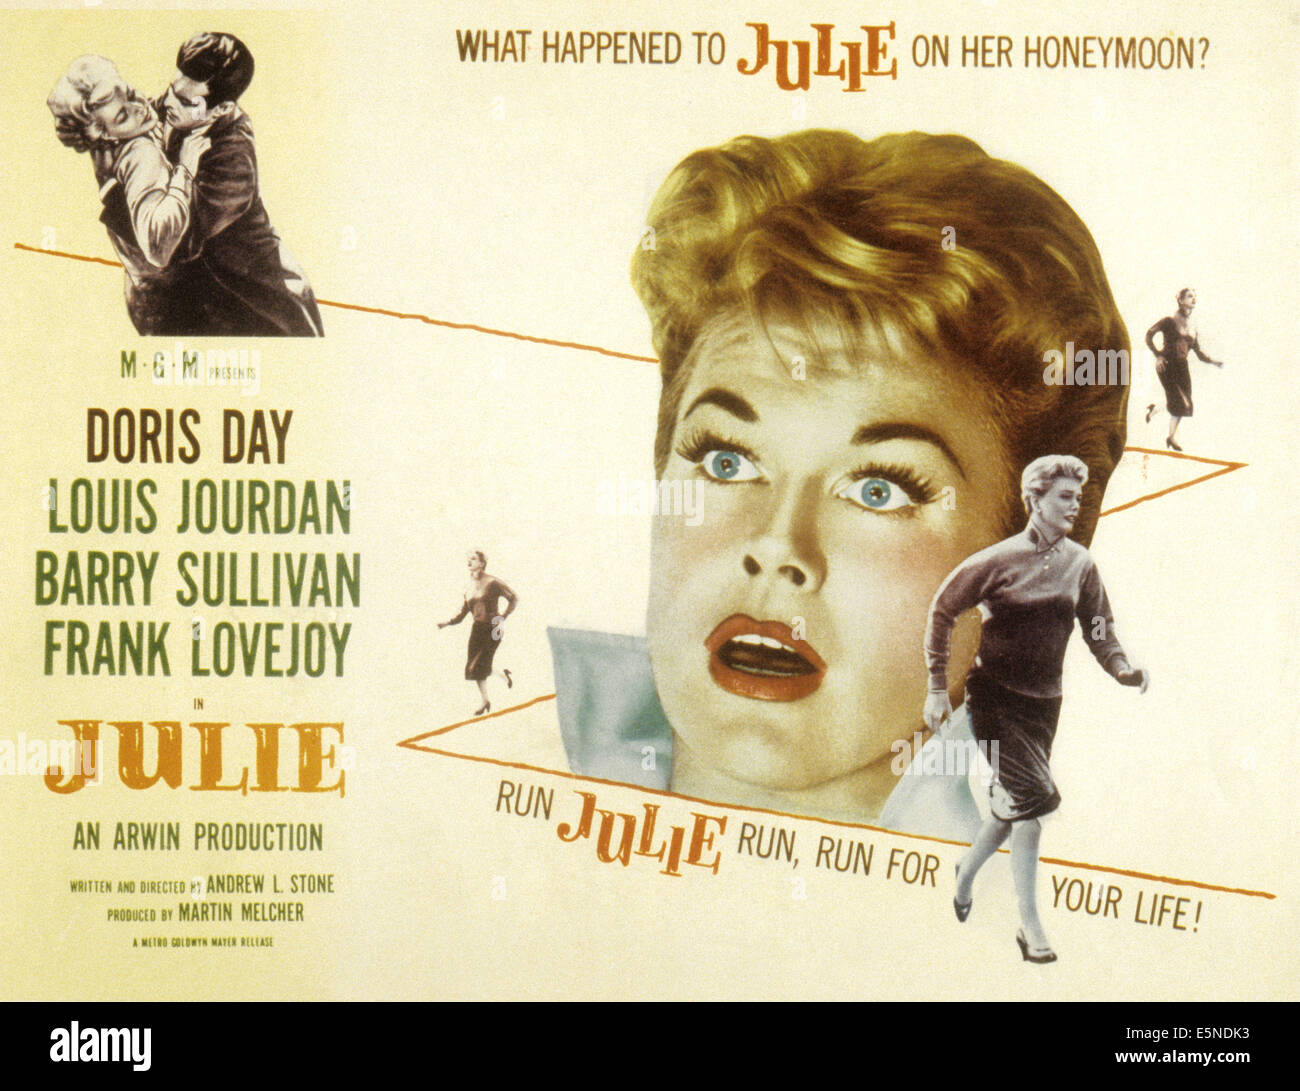 julie-louis-jourdan-doris-day-1956-E5NDK